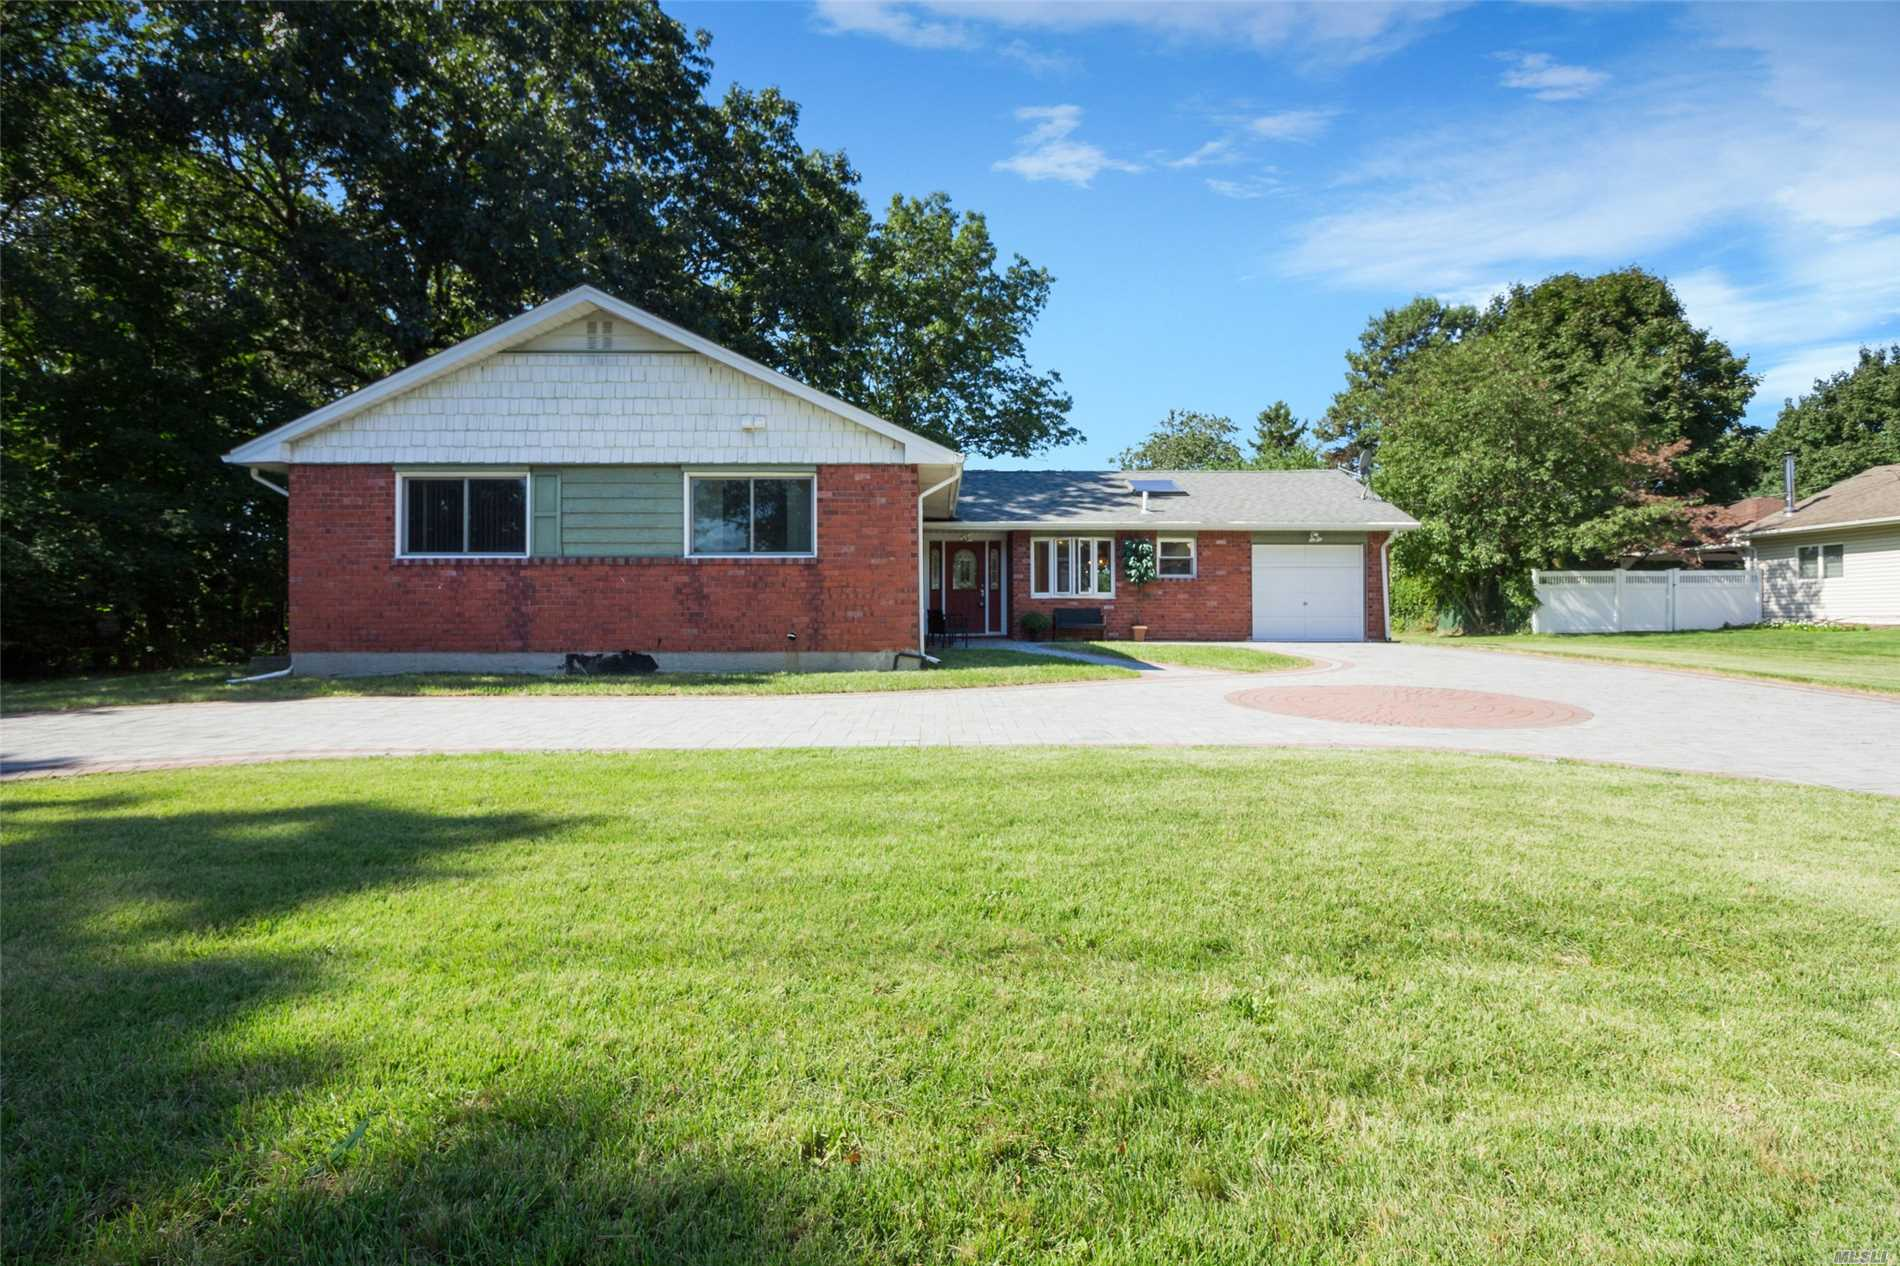 Photo of home for sale at 26 Coconut Dr, Commack NY